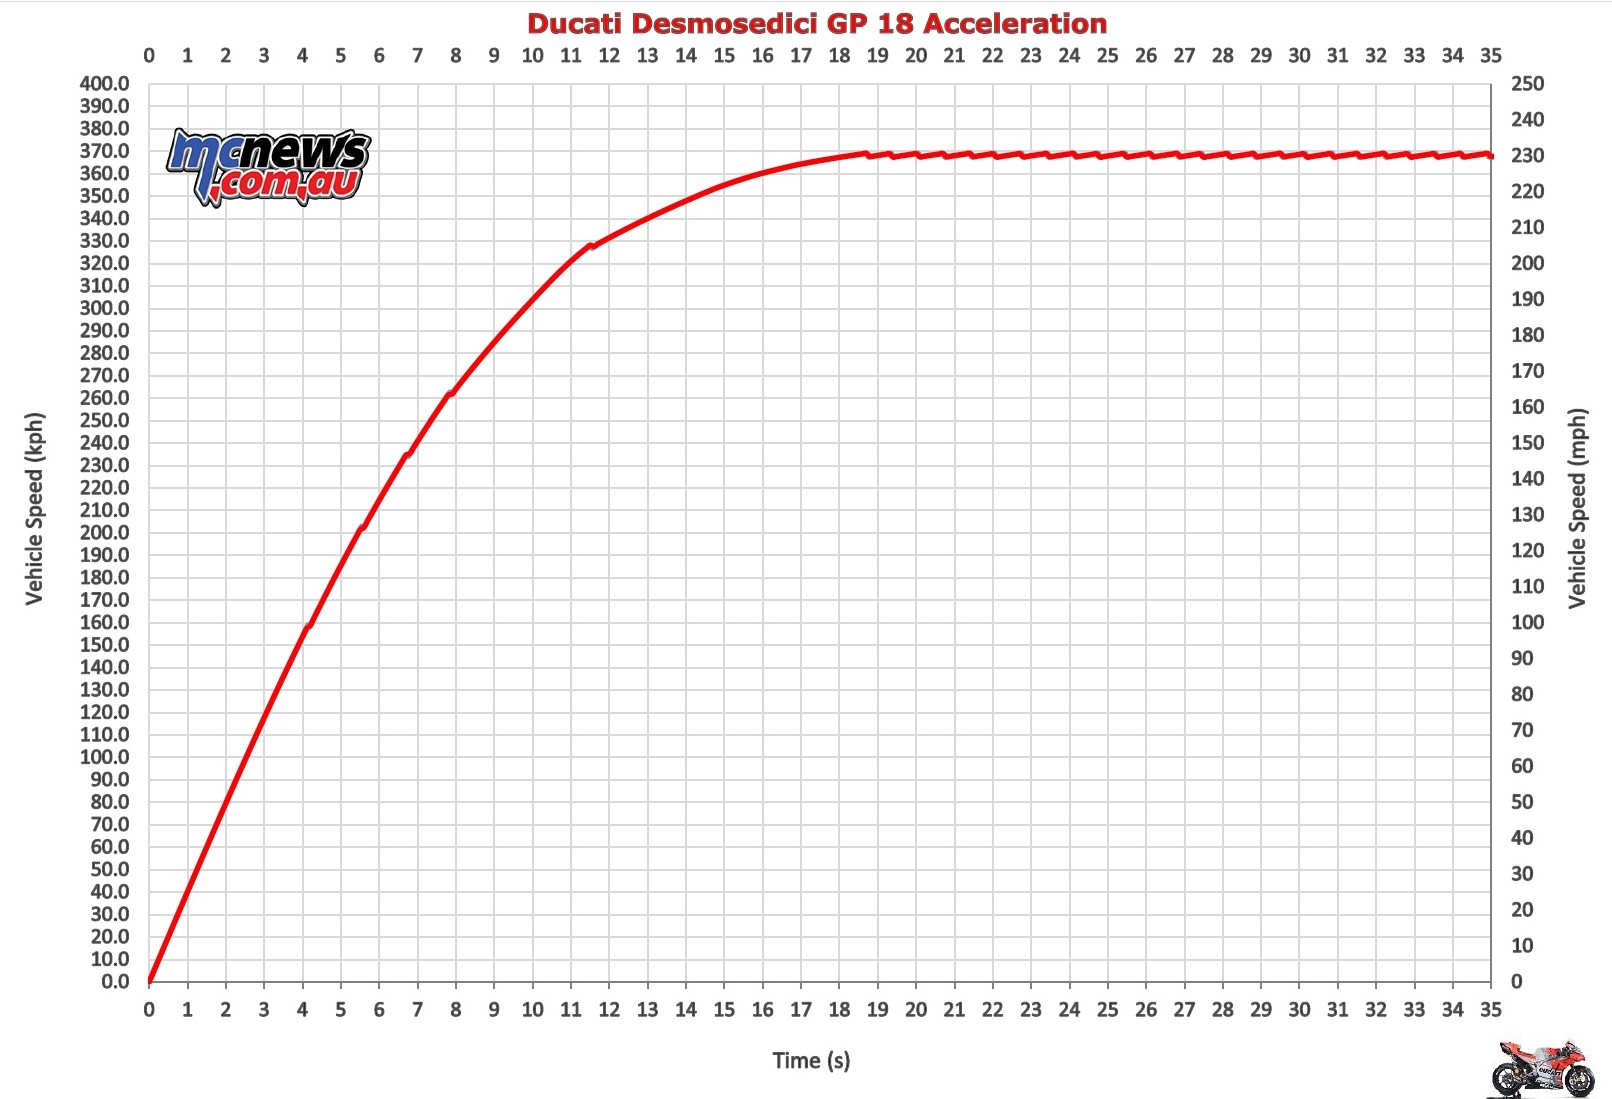 Ducati MotoGP Acceleration and Top Speed